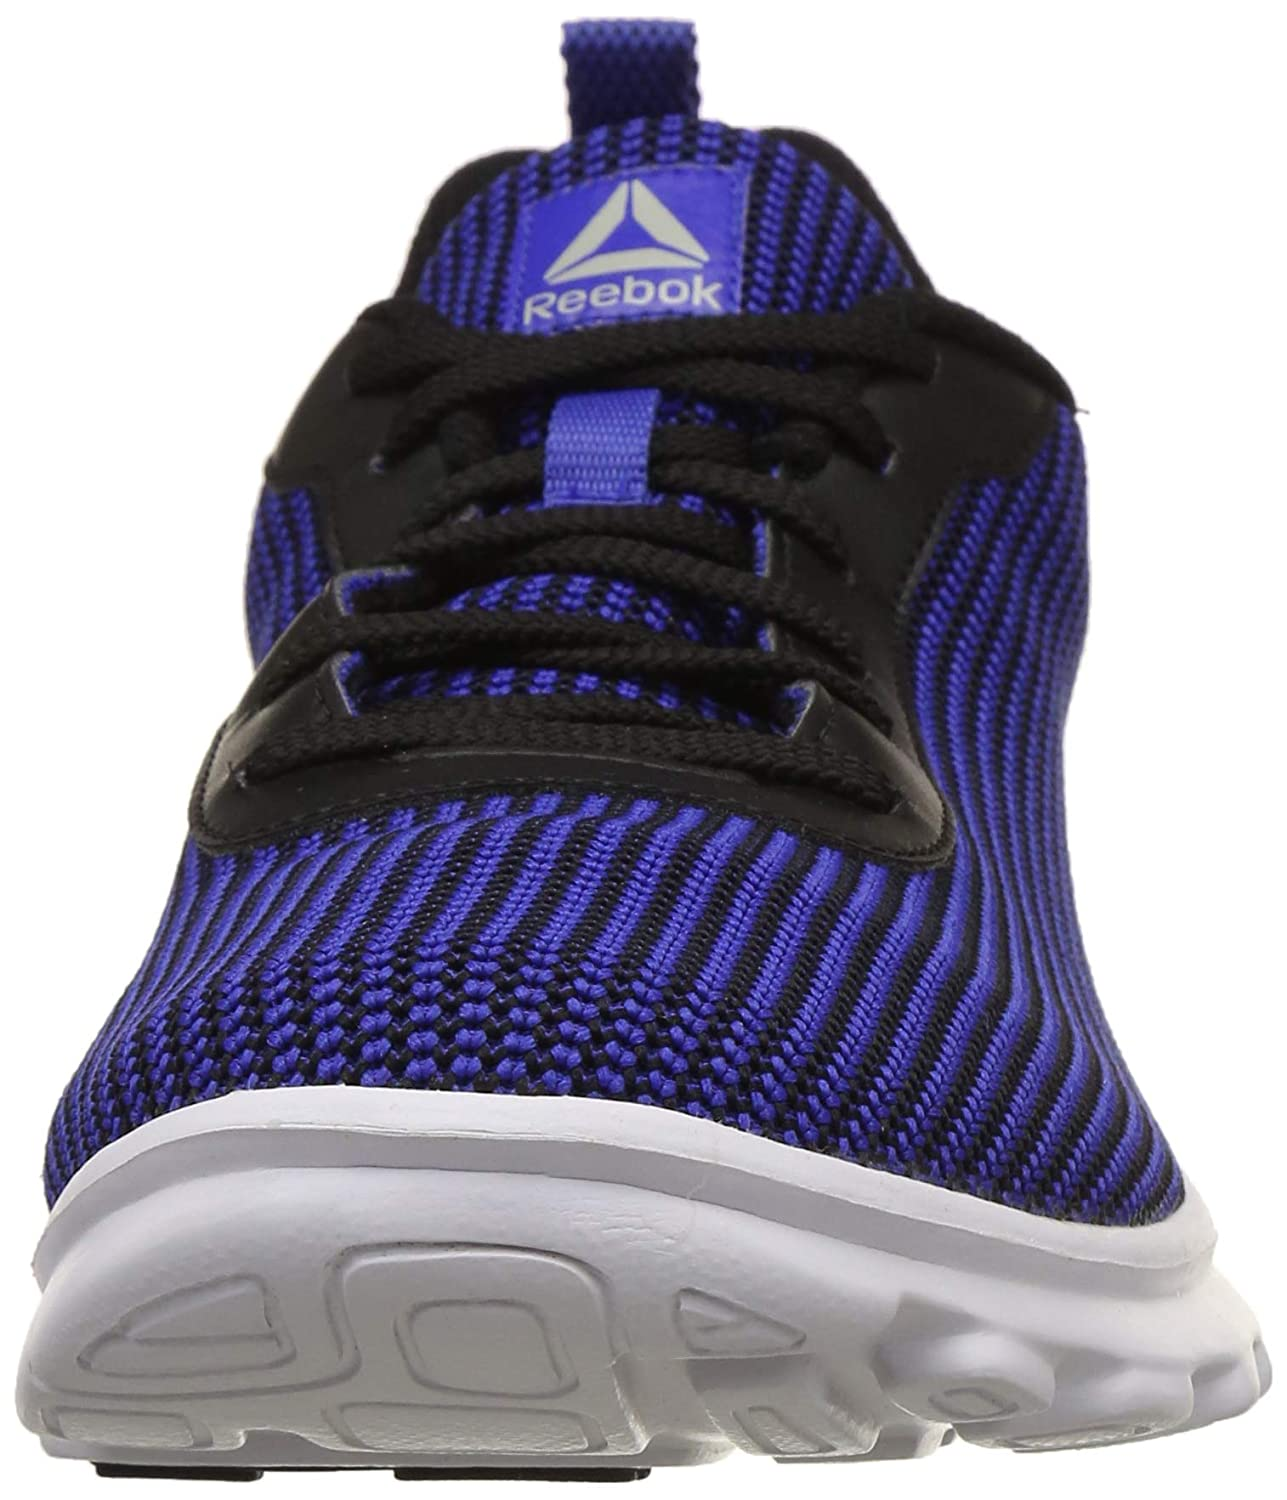 4923d5598a3 Reebok Men s Sweep Runner Lp Running Shoes  Buy Online at Low Prices in  India - Amazon.in